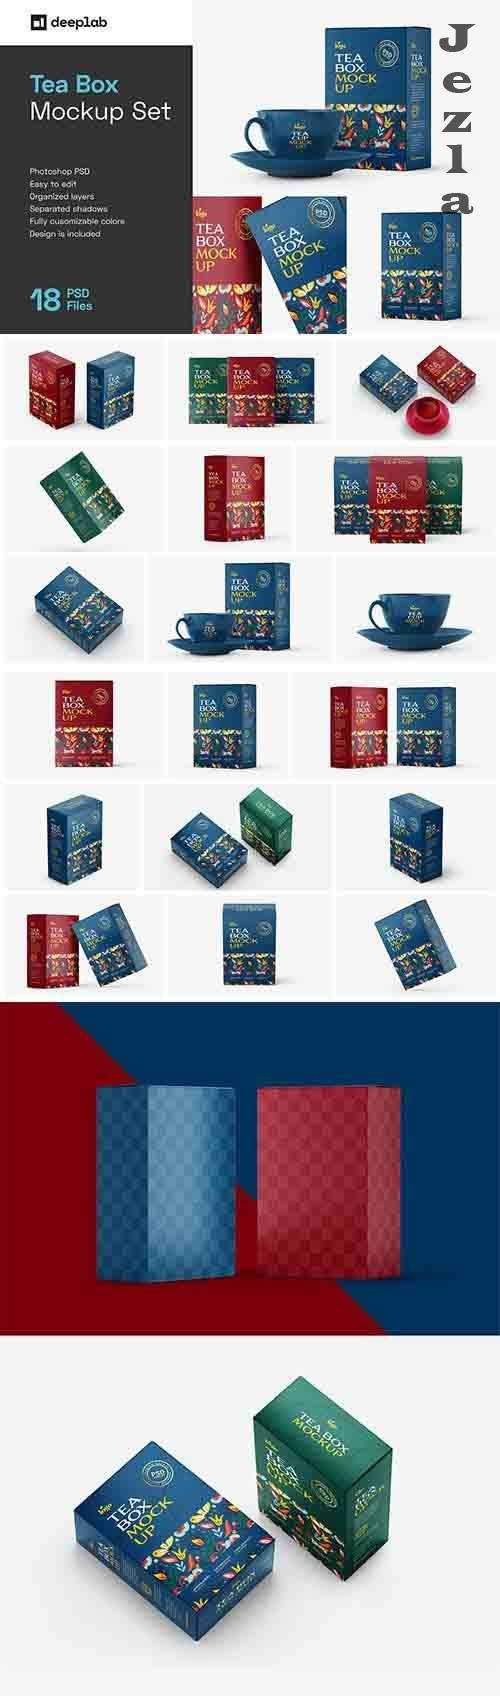 Tea Box Packaging Mockup Set - 5971990